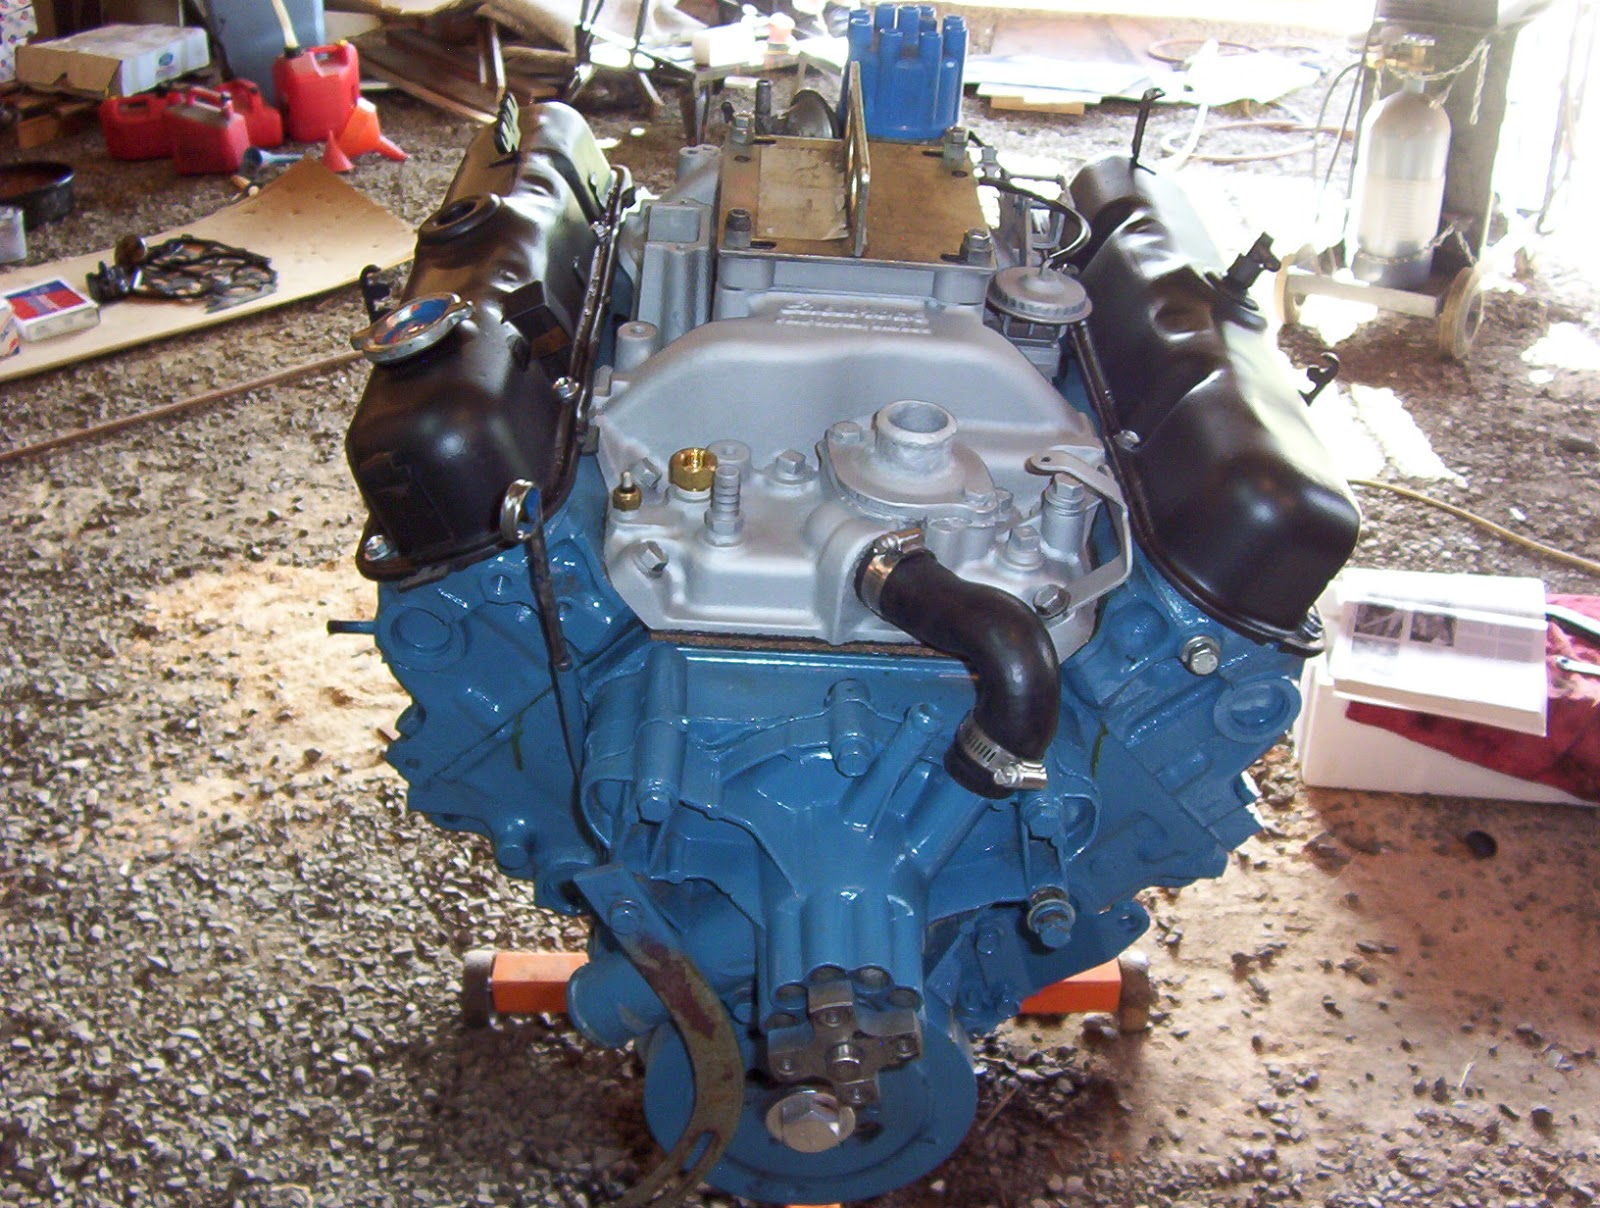 1974 Dodge Charger Painting The Engine Compartment And Motor